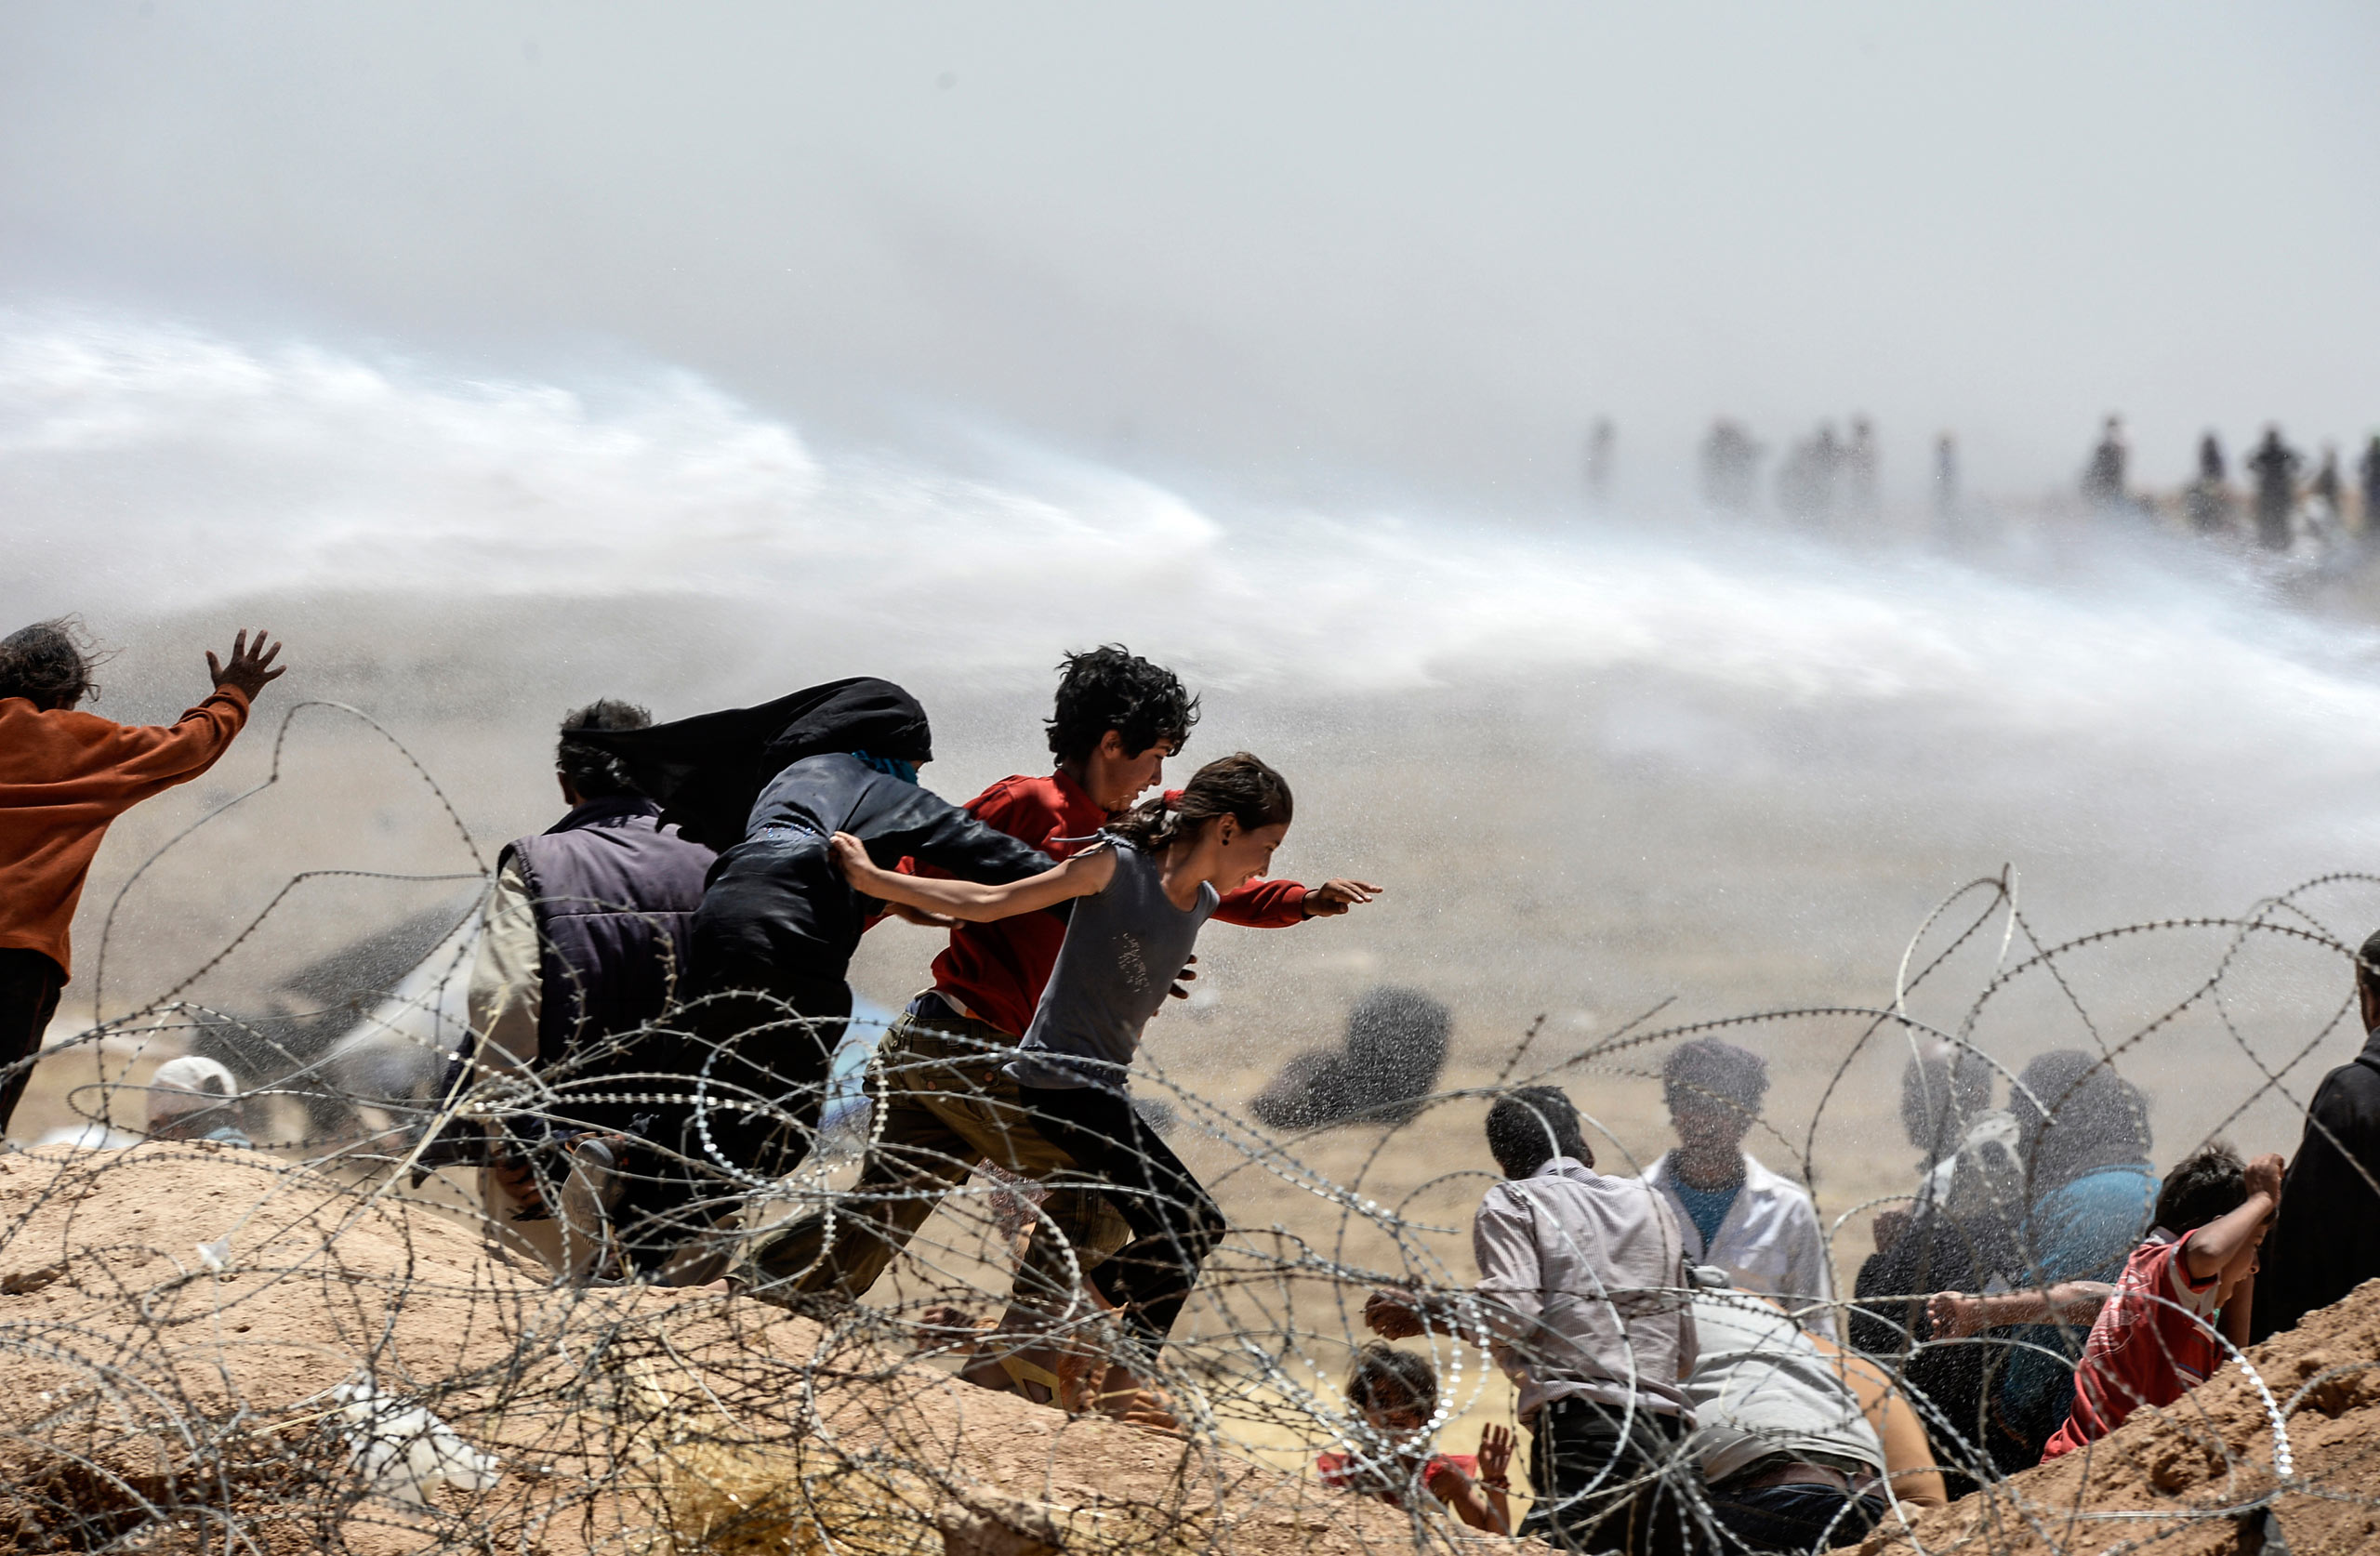 Syrian refugees run away as Turkish soldiers use water cannons to shove them from the wired fences at the Turkish border near the Syrian town of Tell Abyad and Akçakale, in the Şanlıurfa province. June 13, 2015.